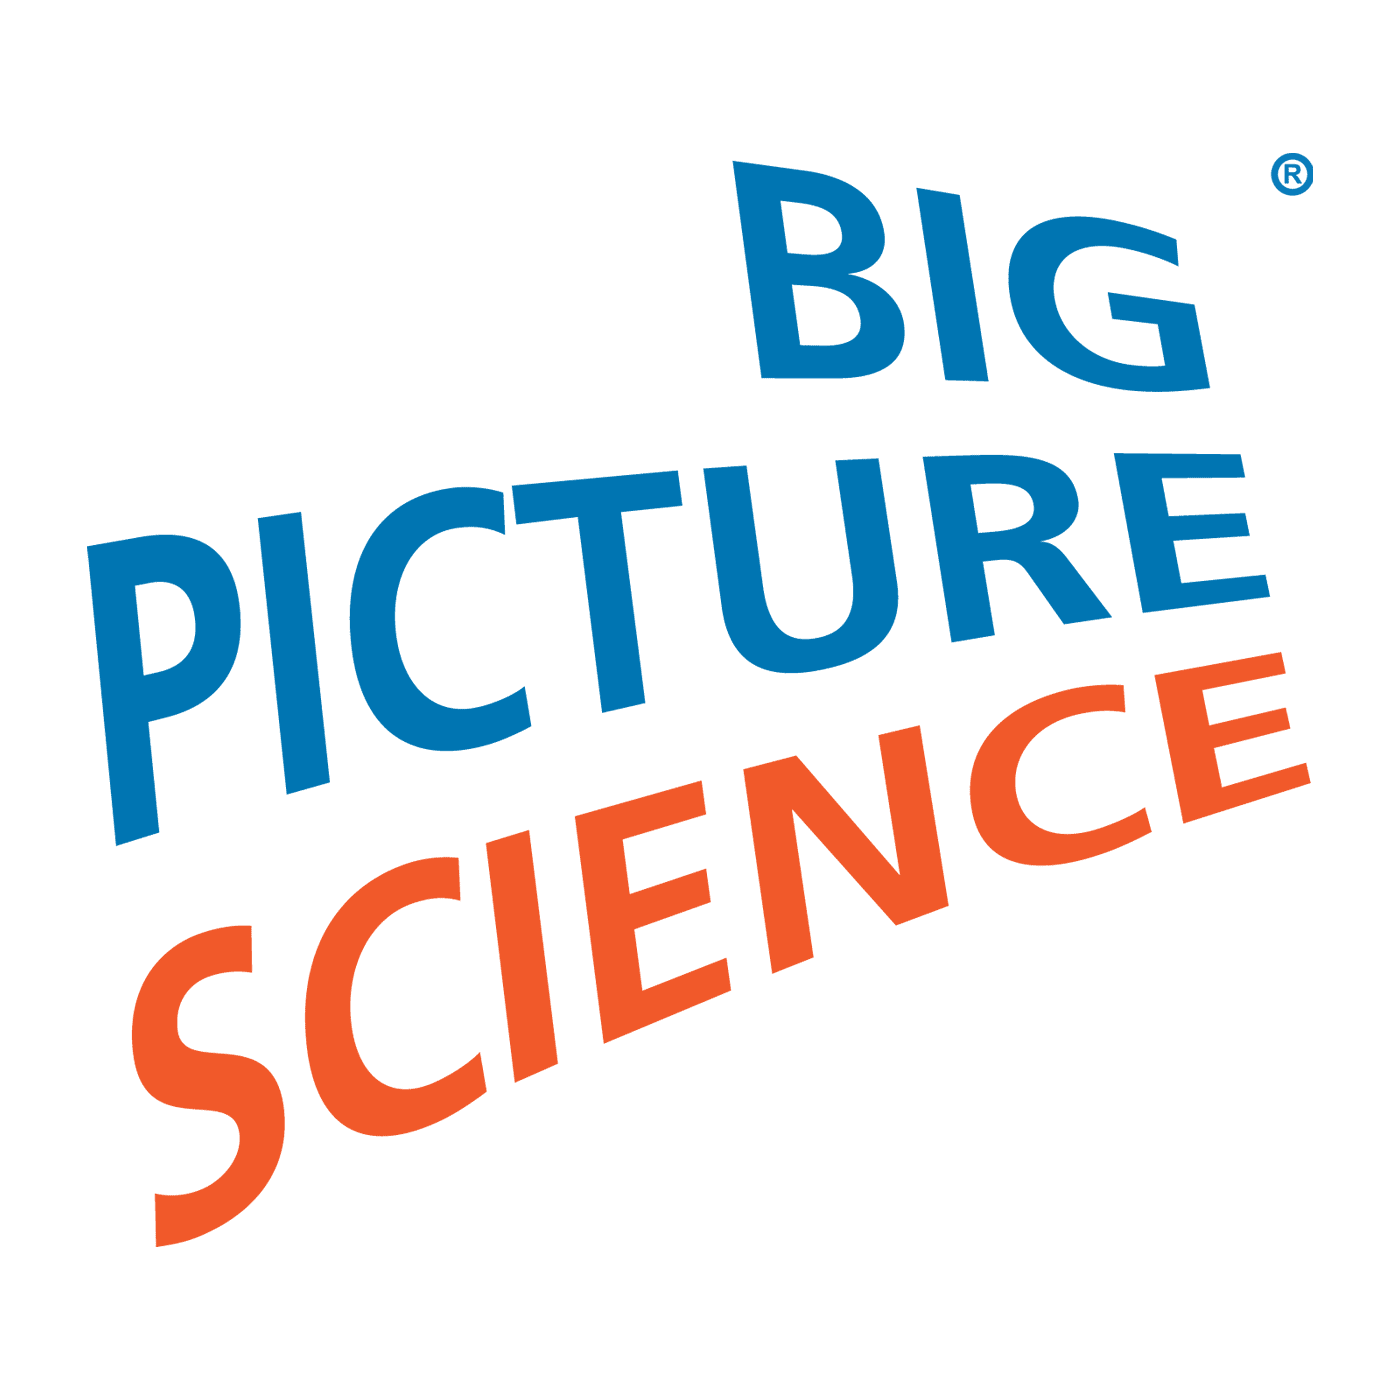 Listen to Big Picture Science episodes free, on demand